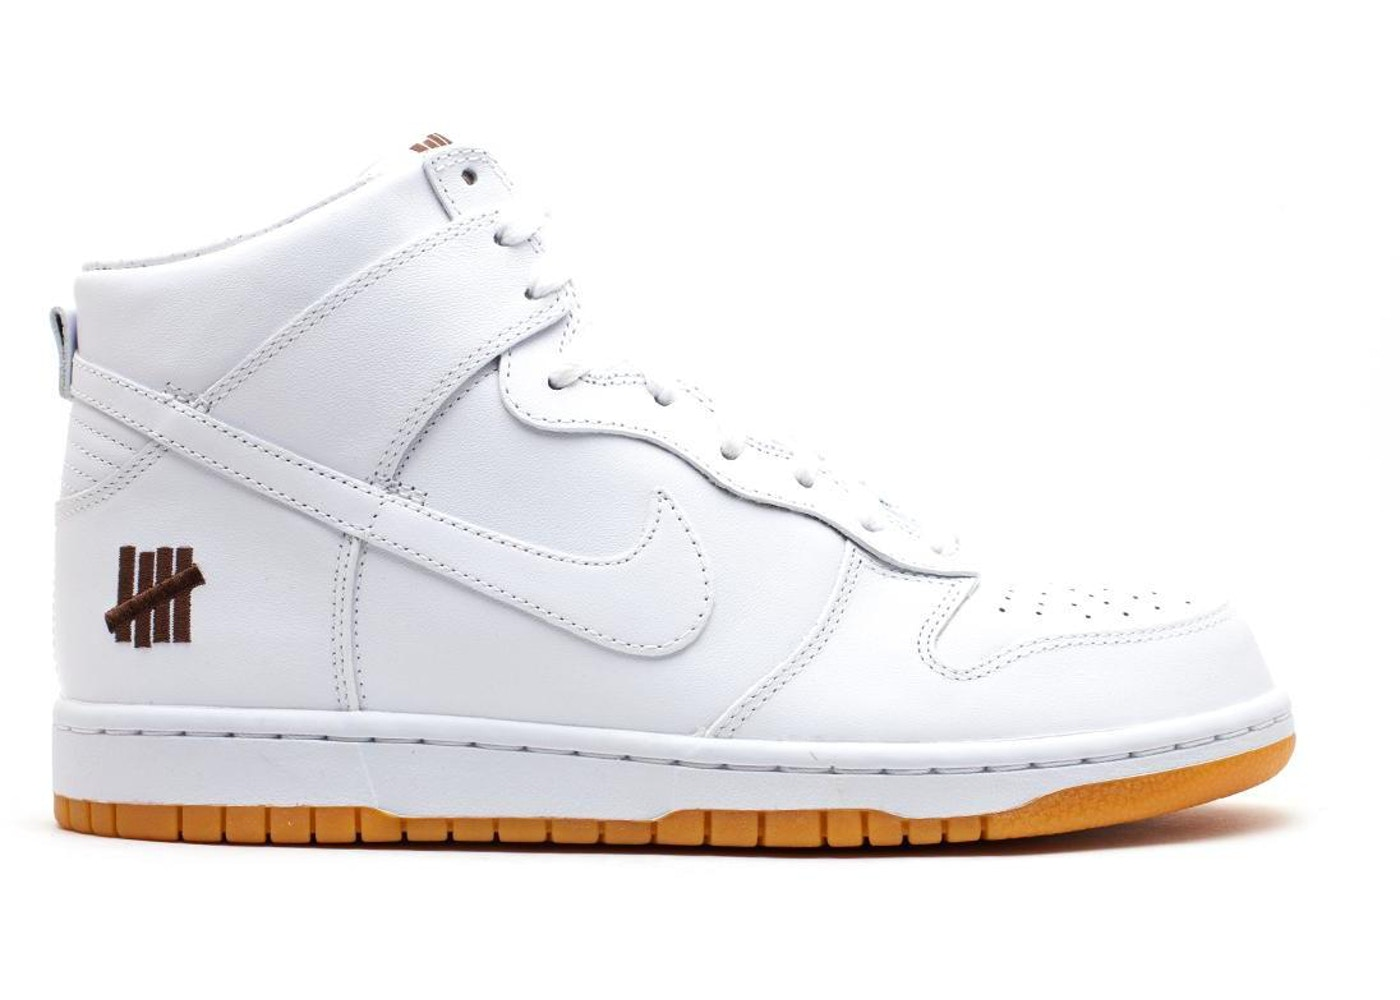 pretty nice 8e56b fe3d0 Nike Dunk High UNDFTD Bring Back Pack White